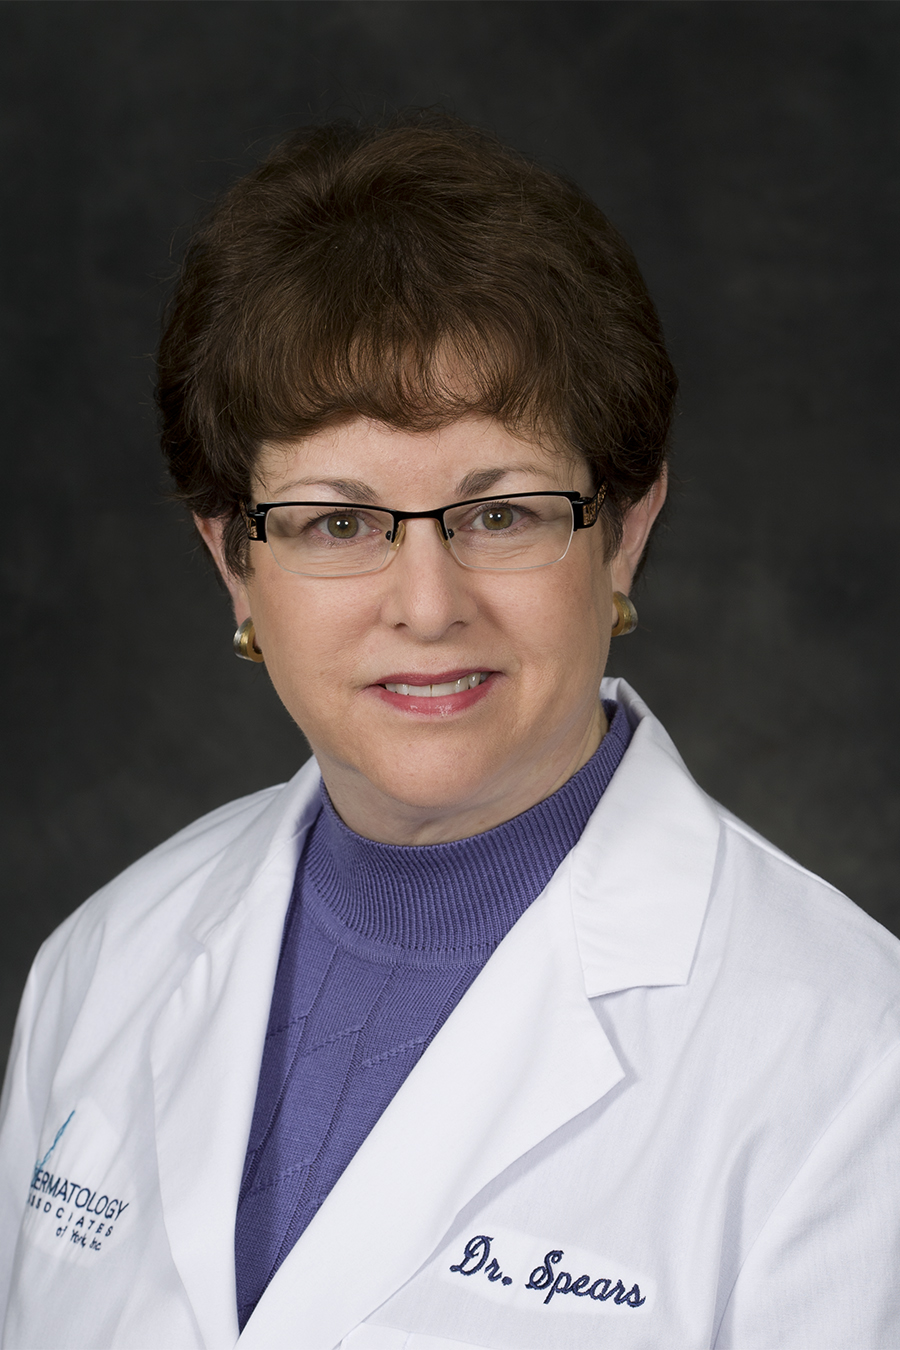 Laura S. Spears, M.D.